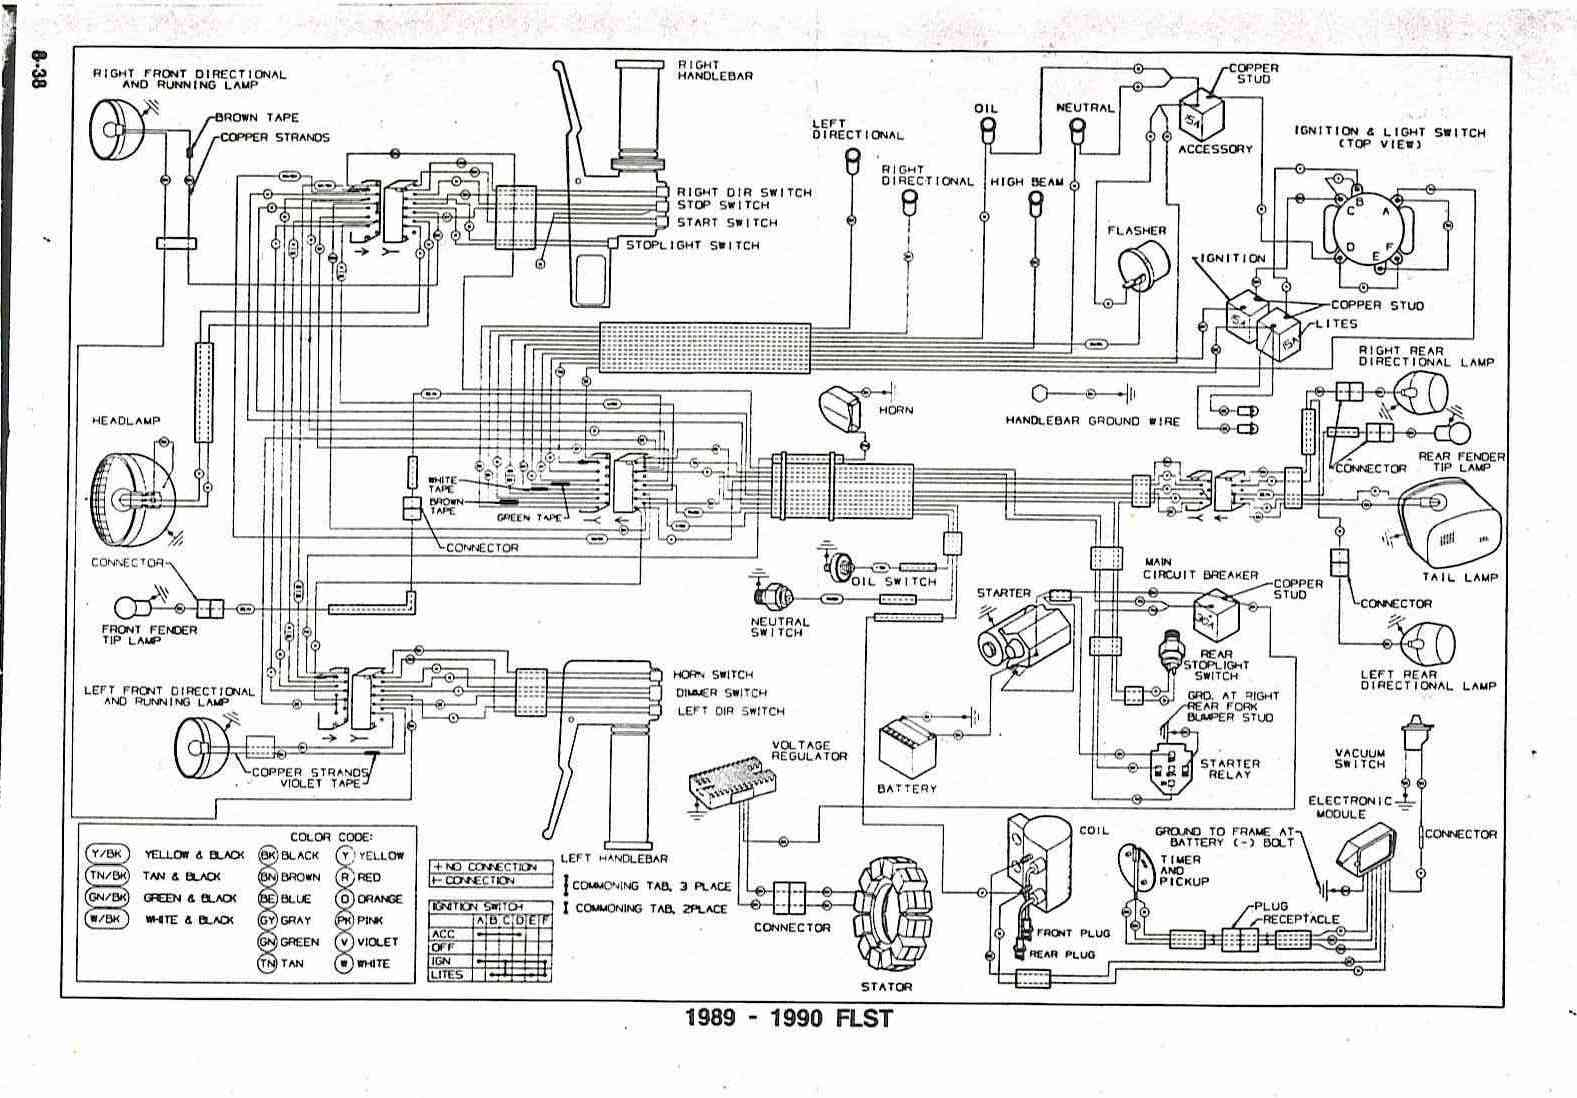 Wiring Schematic Harley Davidson likewise Big in addition Harley Davidson Ke Wiring as well Harley Davidson Ke Wiring moreover Cable Harness Routing. on harley davidson turn signal connectors